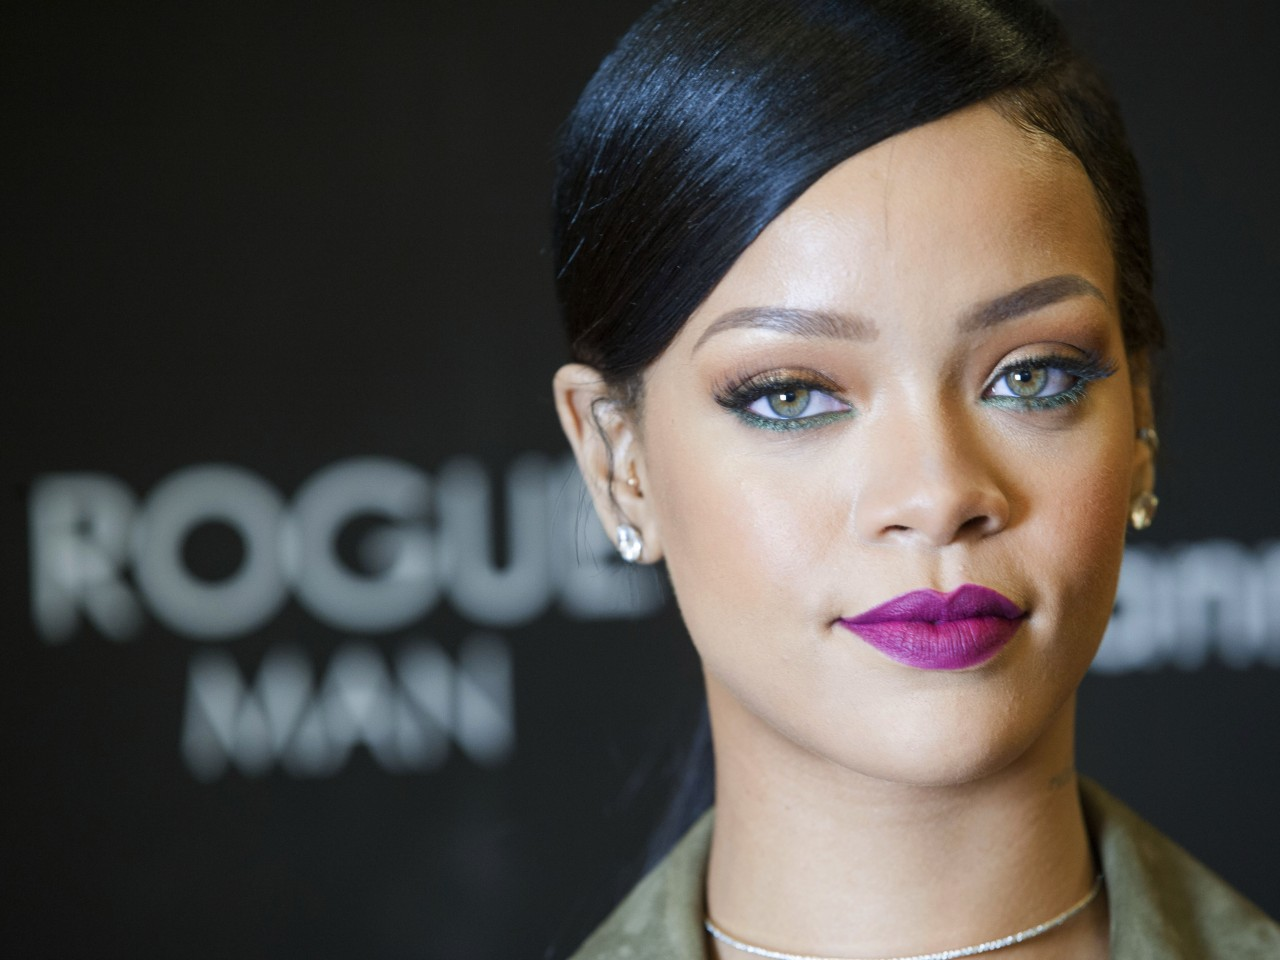 Rihanna opens up about staying with Chris Brown after abuse: u201cI was that girlu201d